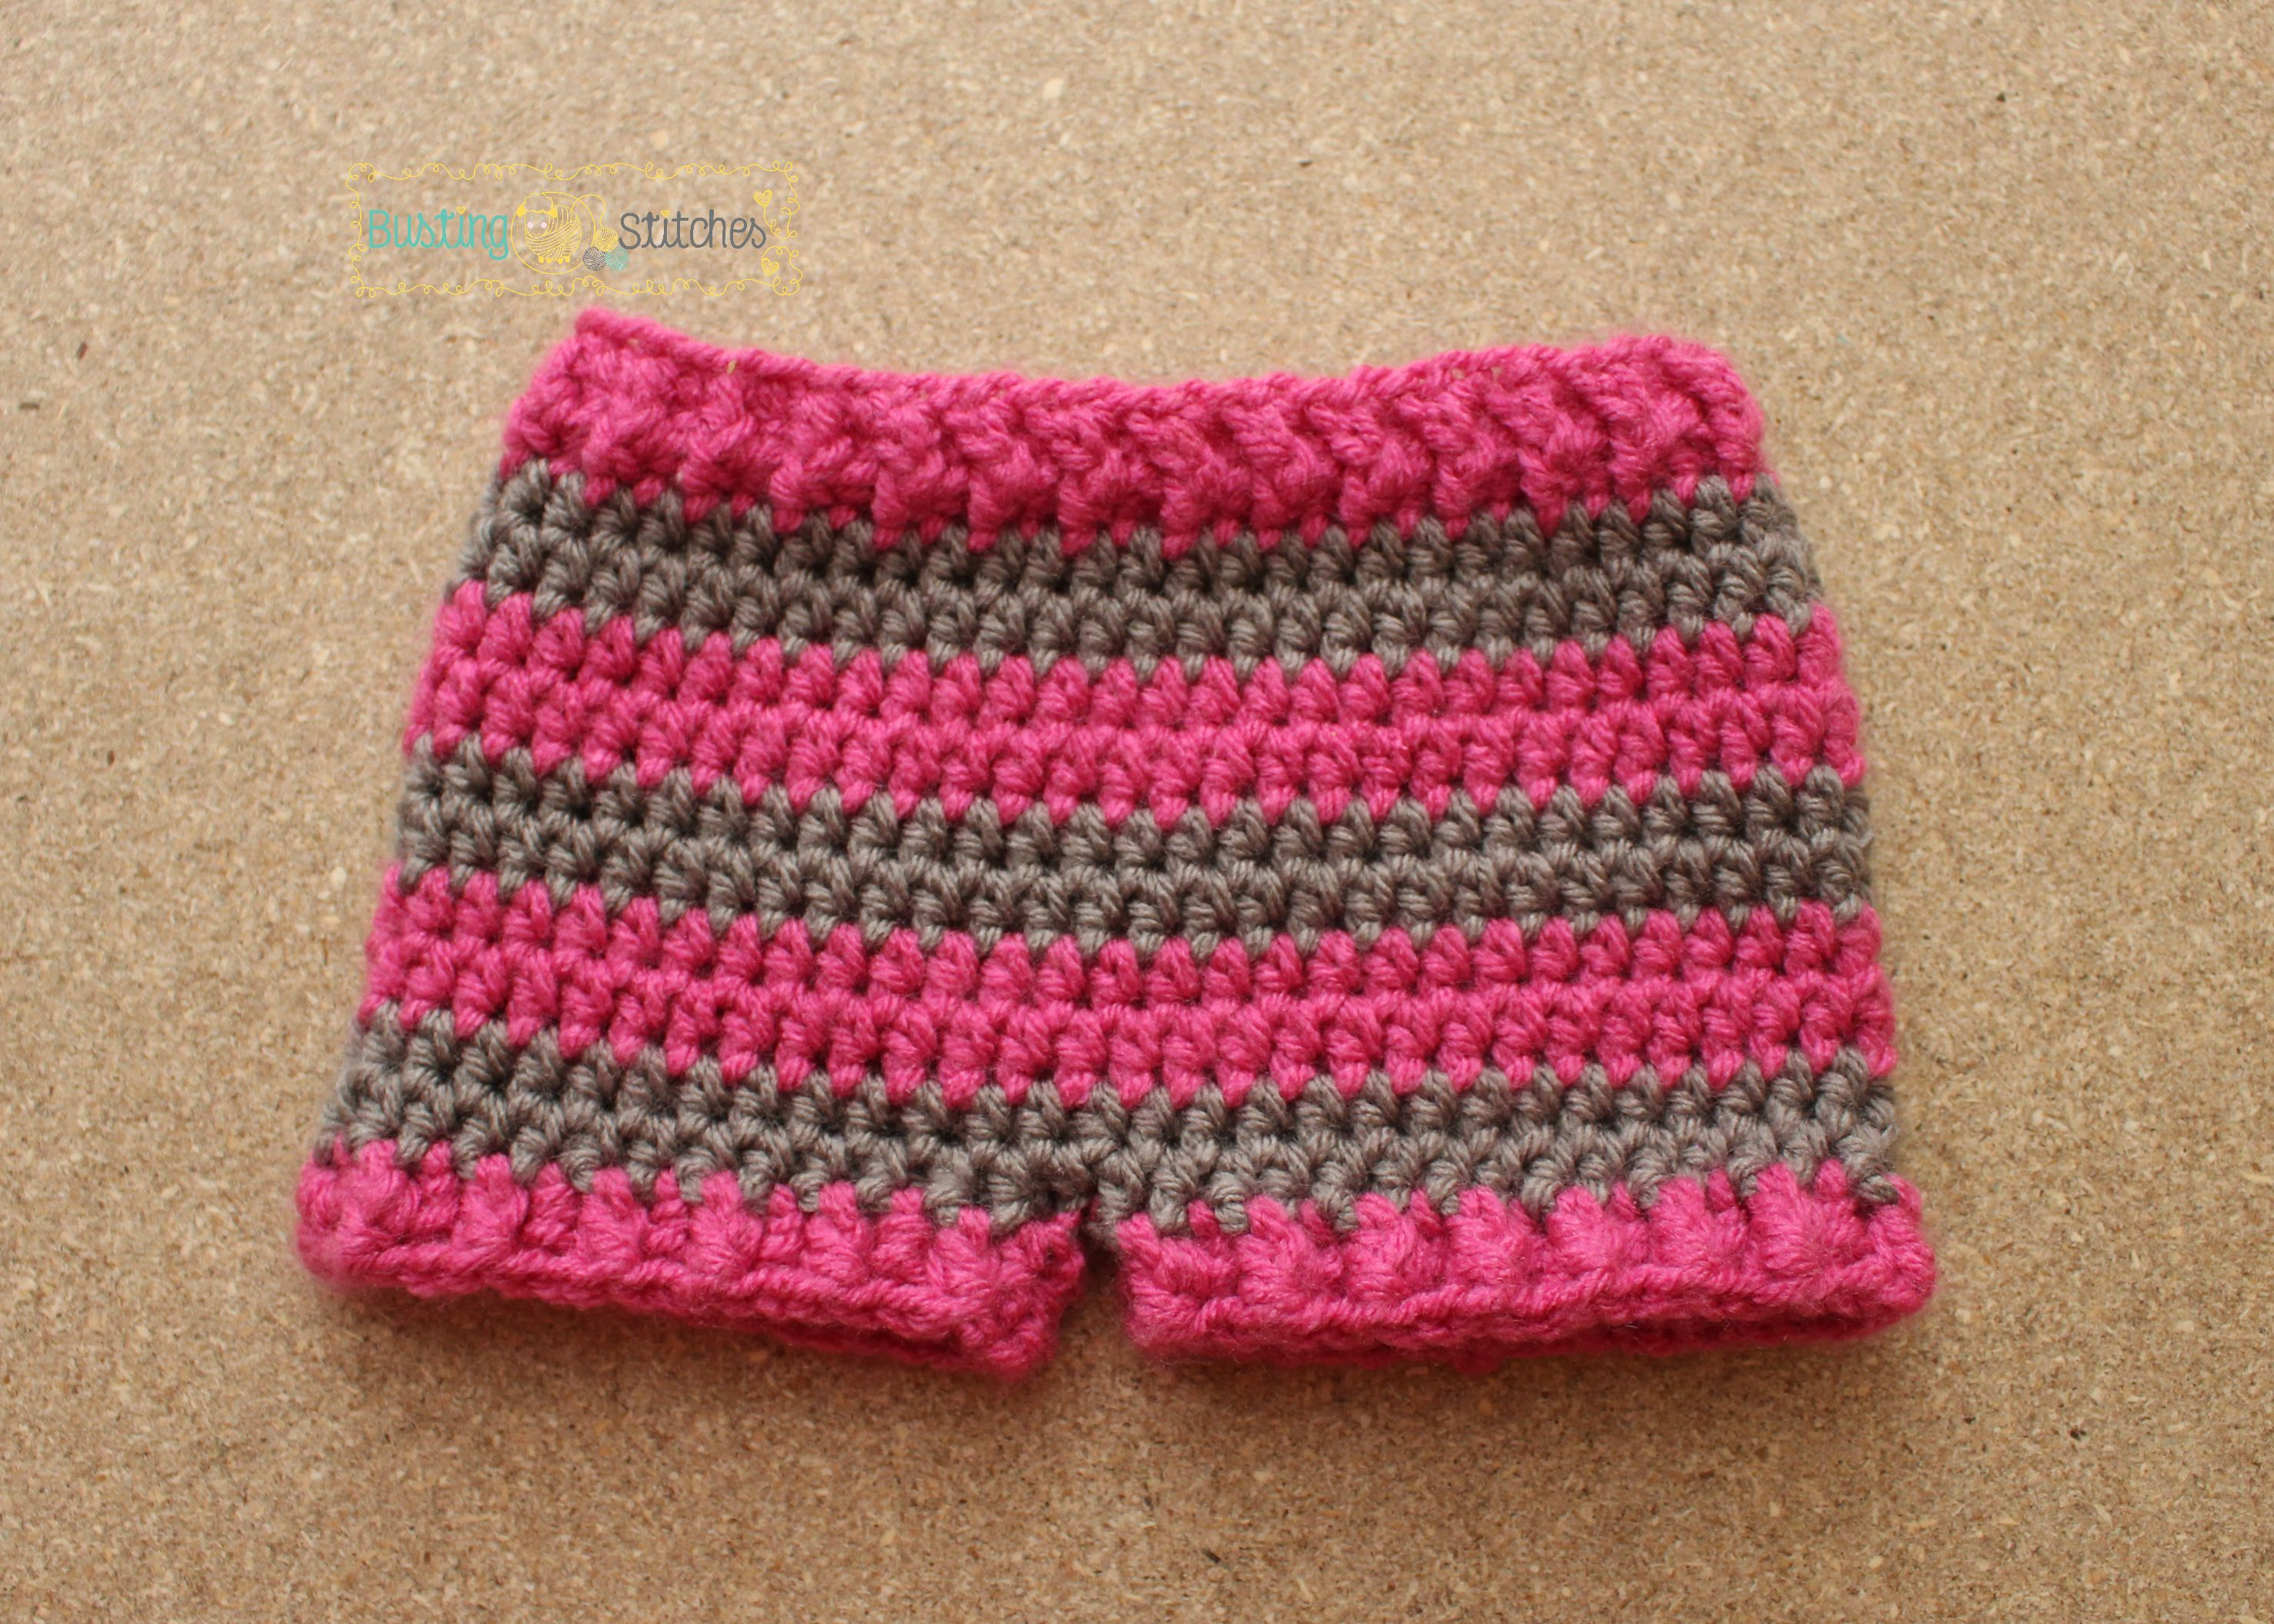 dcb01fce7e9 Shorts (3-18 month) at Busting Stitches